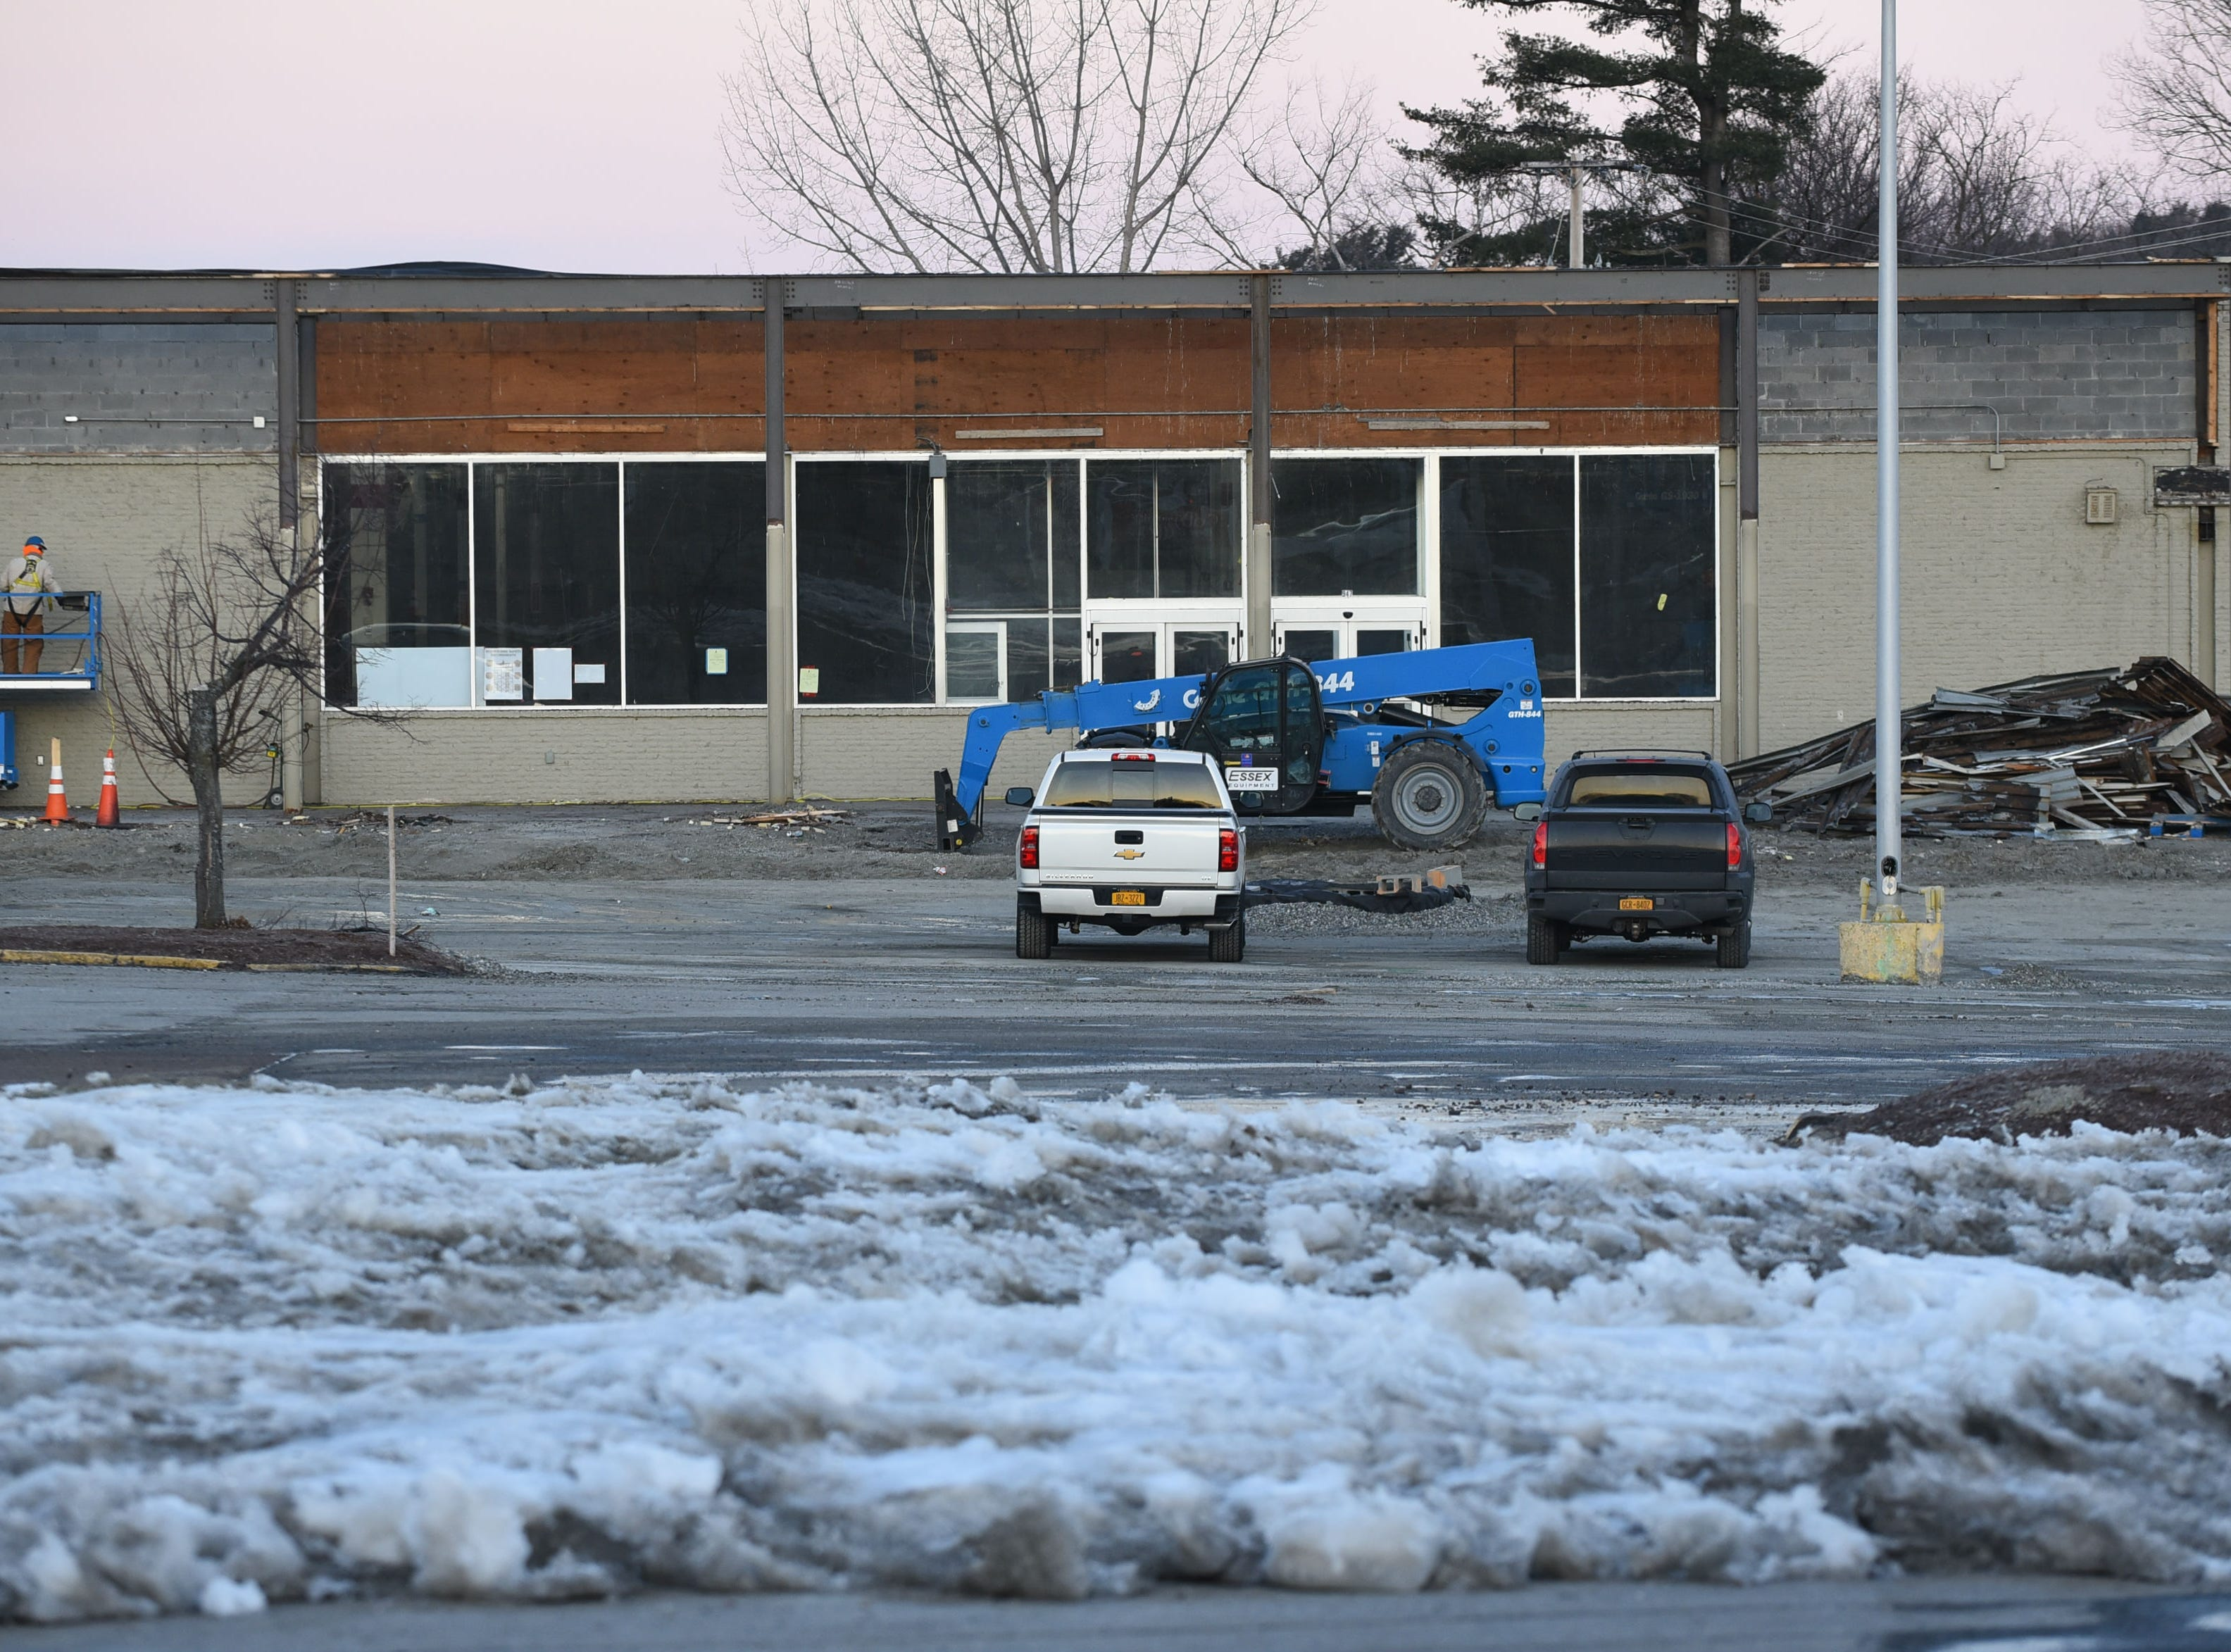 The portico over the main entrance to the form Kmart in South Burlington has been removed, as seen on the morning of Wednesday, March 20, 2019. Renovation work has begun at the empty shopping center to make way for a new Hannaford supermarket.